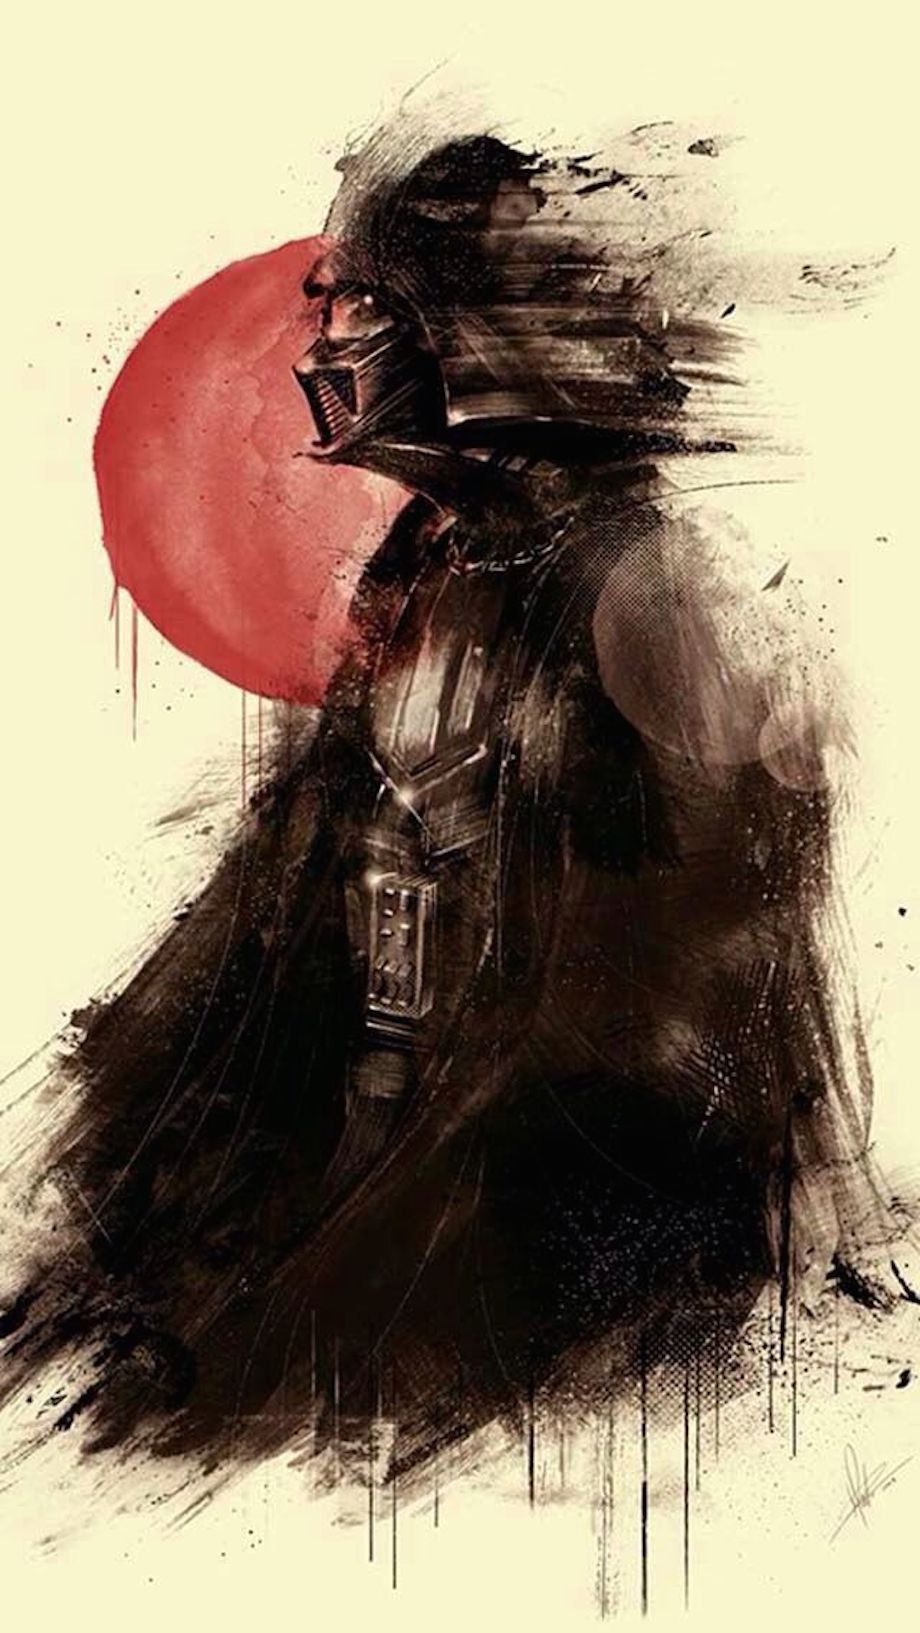 Phone backgrounds from a galaxy far, far away (24 HQ